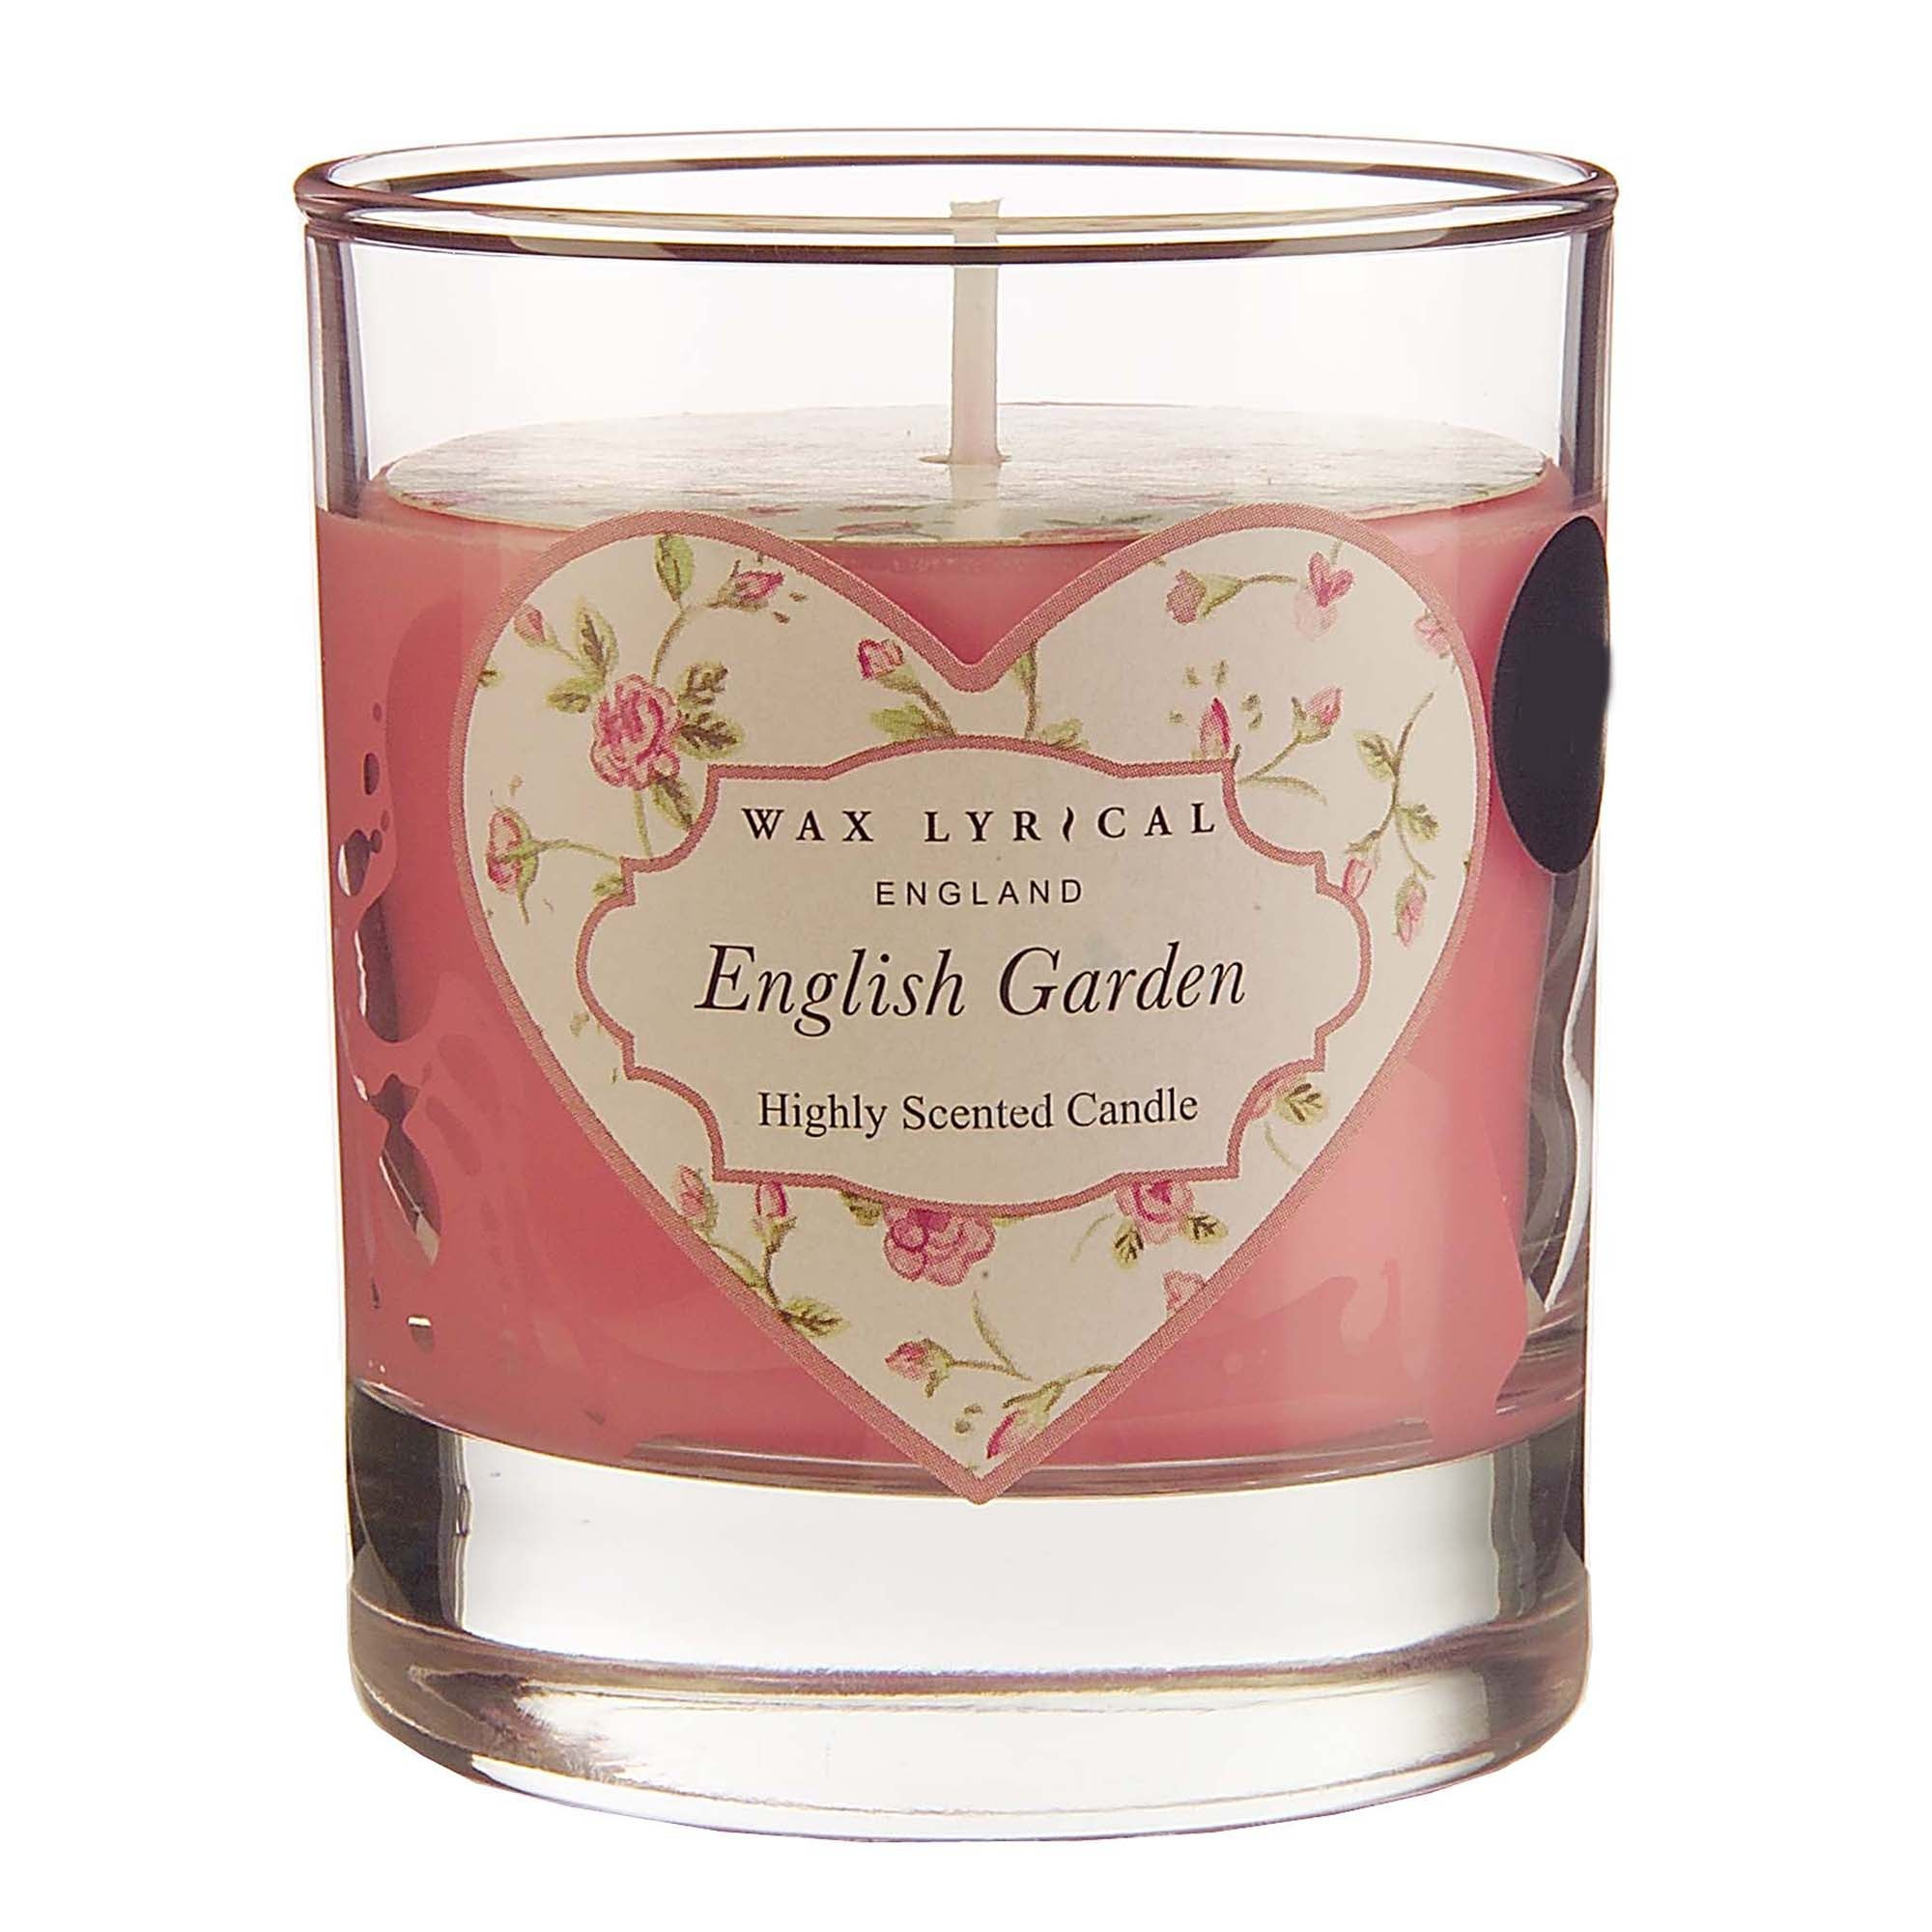 Wax Lyrical English Garden Wax Filled Glass Candle